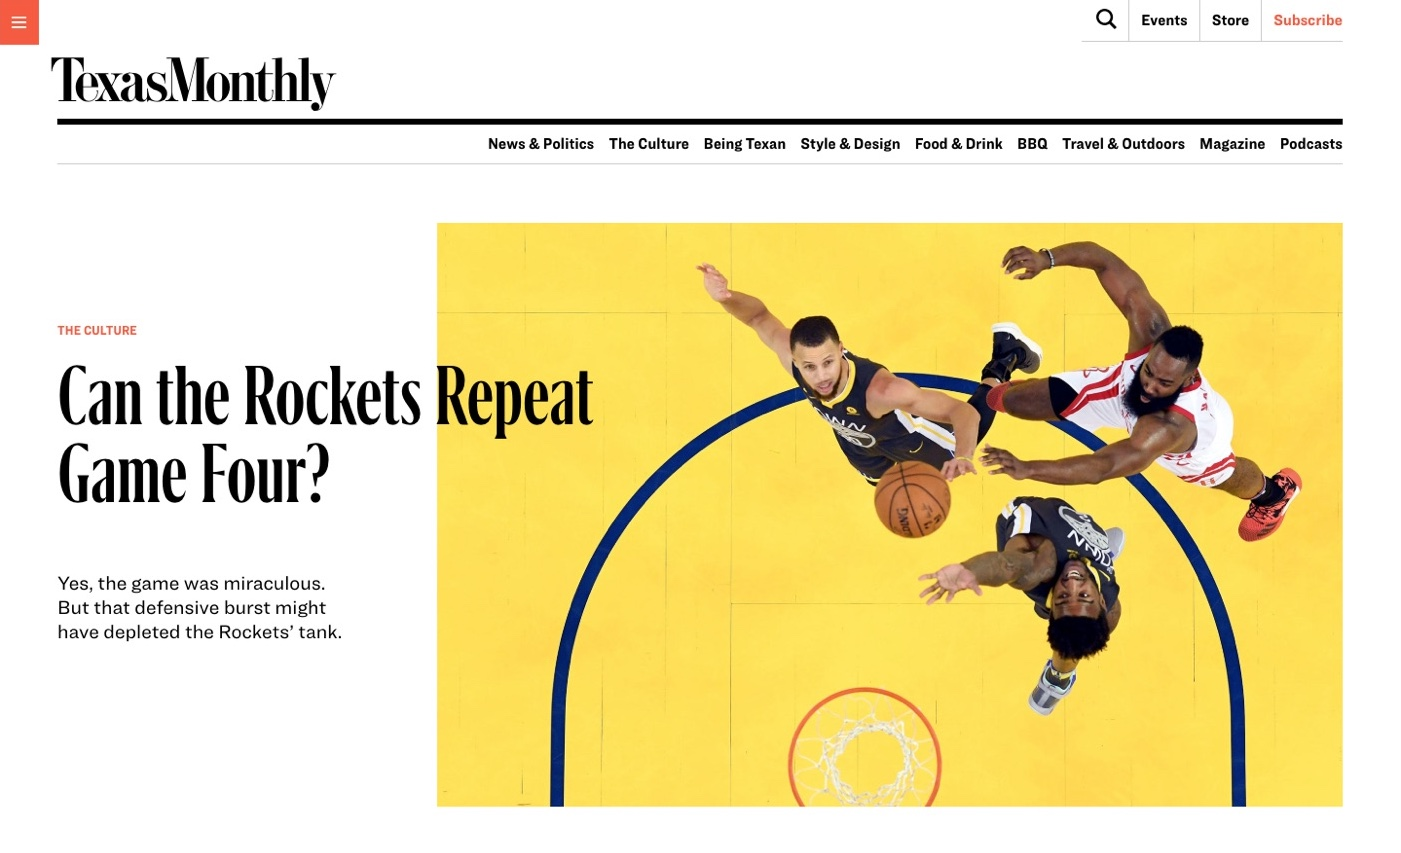 Texas Monthly article topper: Can the Rockets Repeat Game Four?